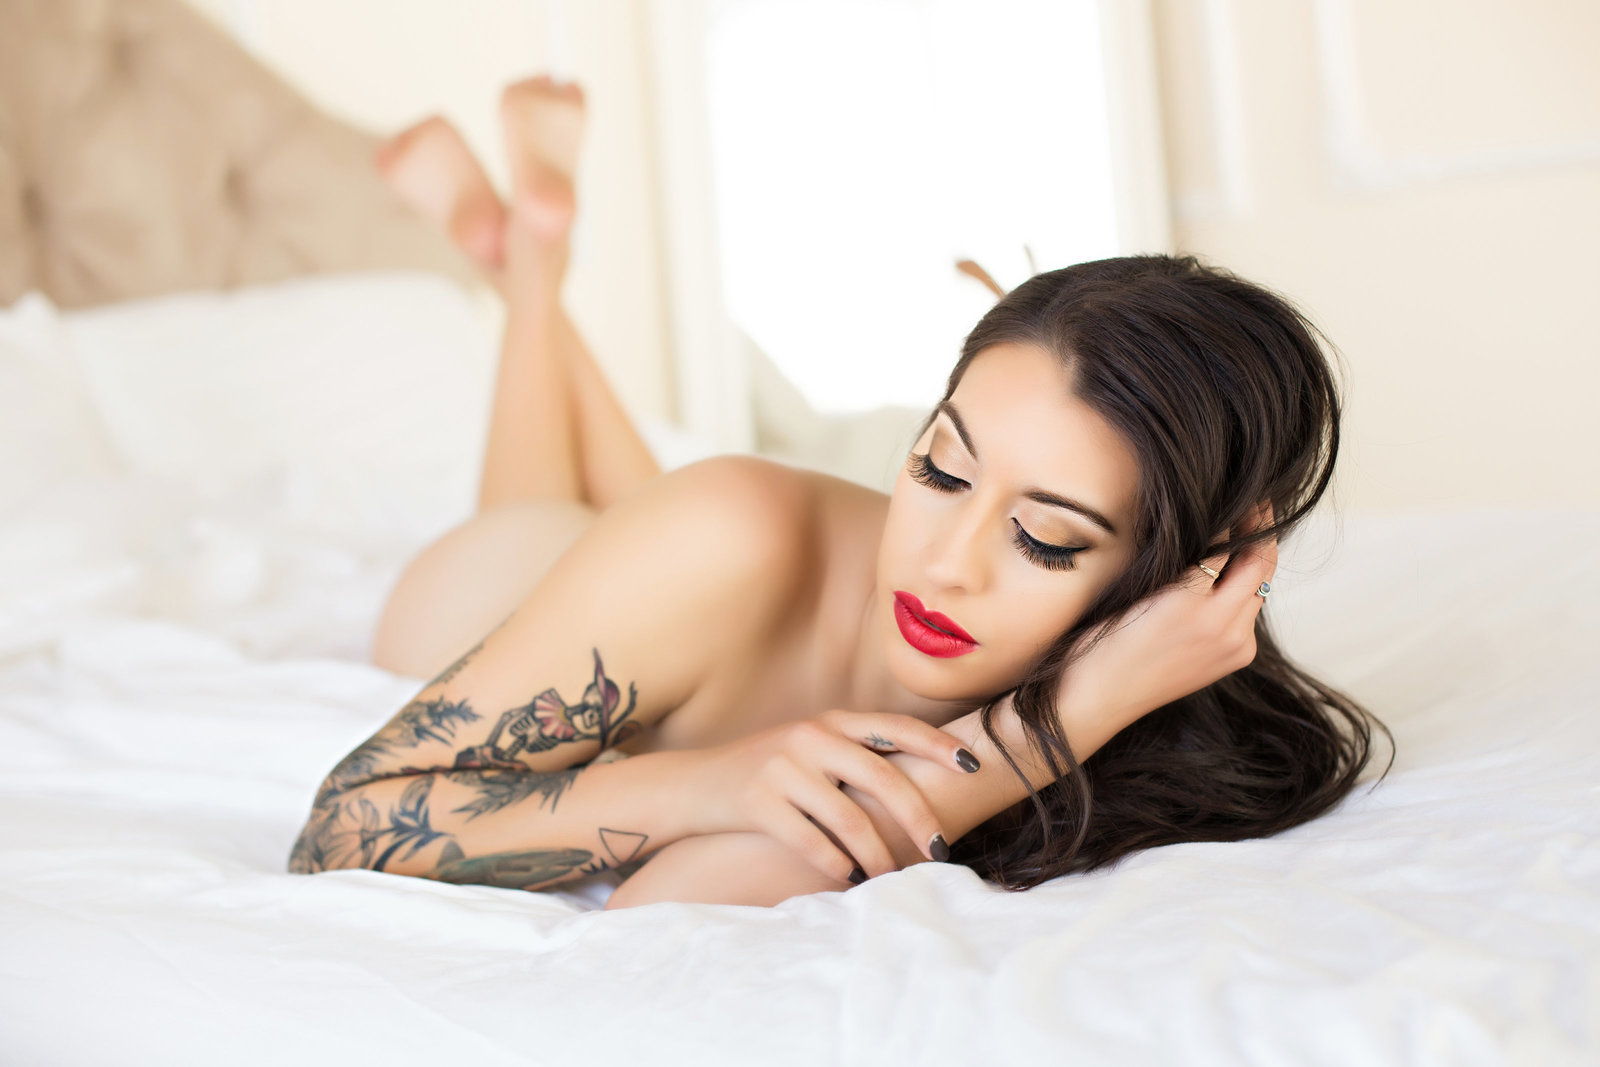 red lips tattoos, le boudoir studio